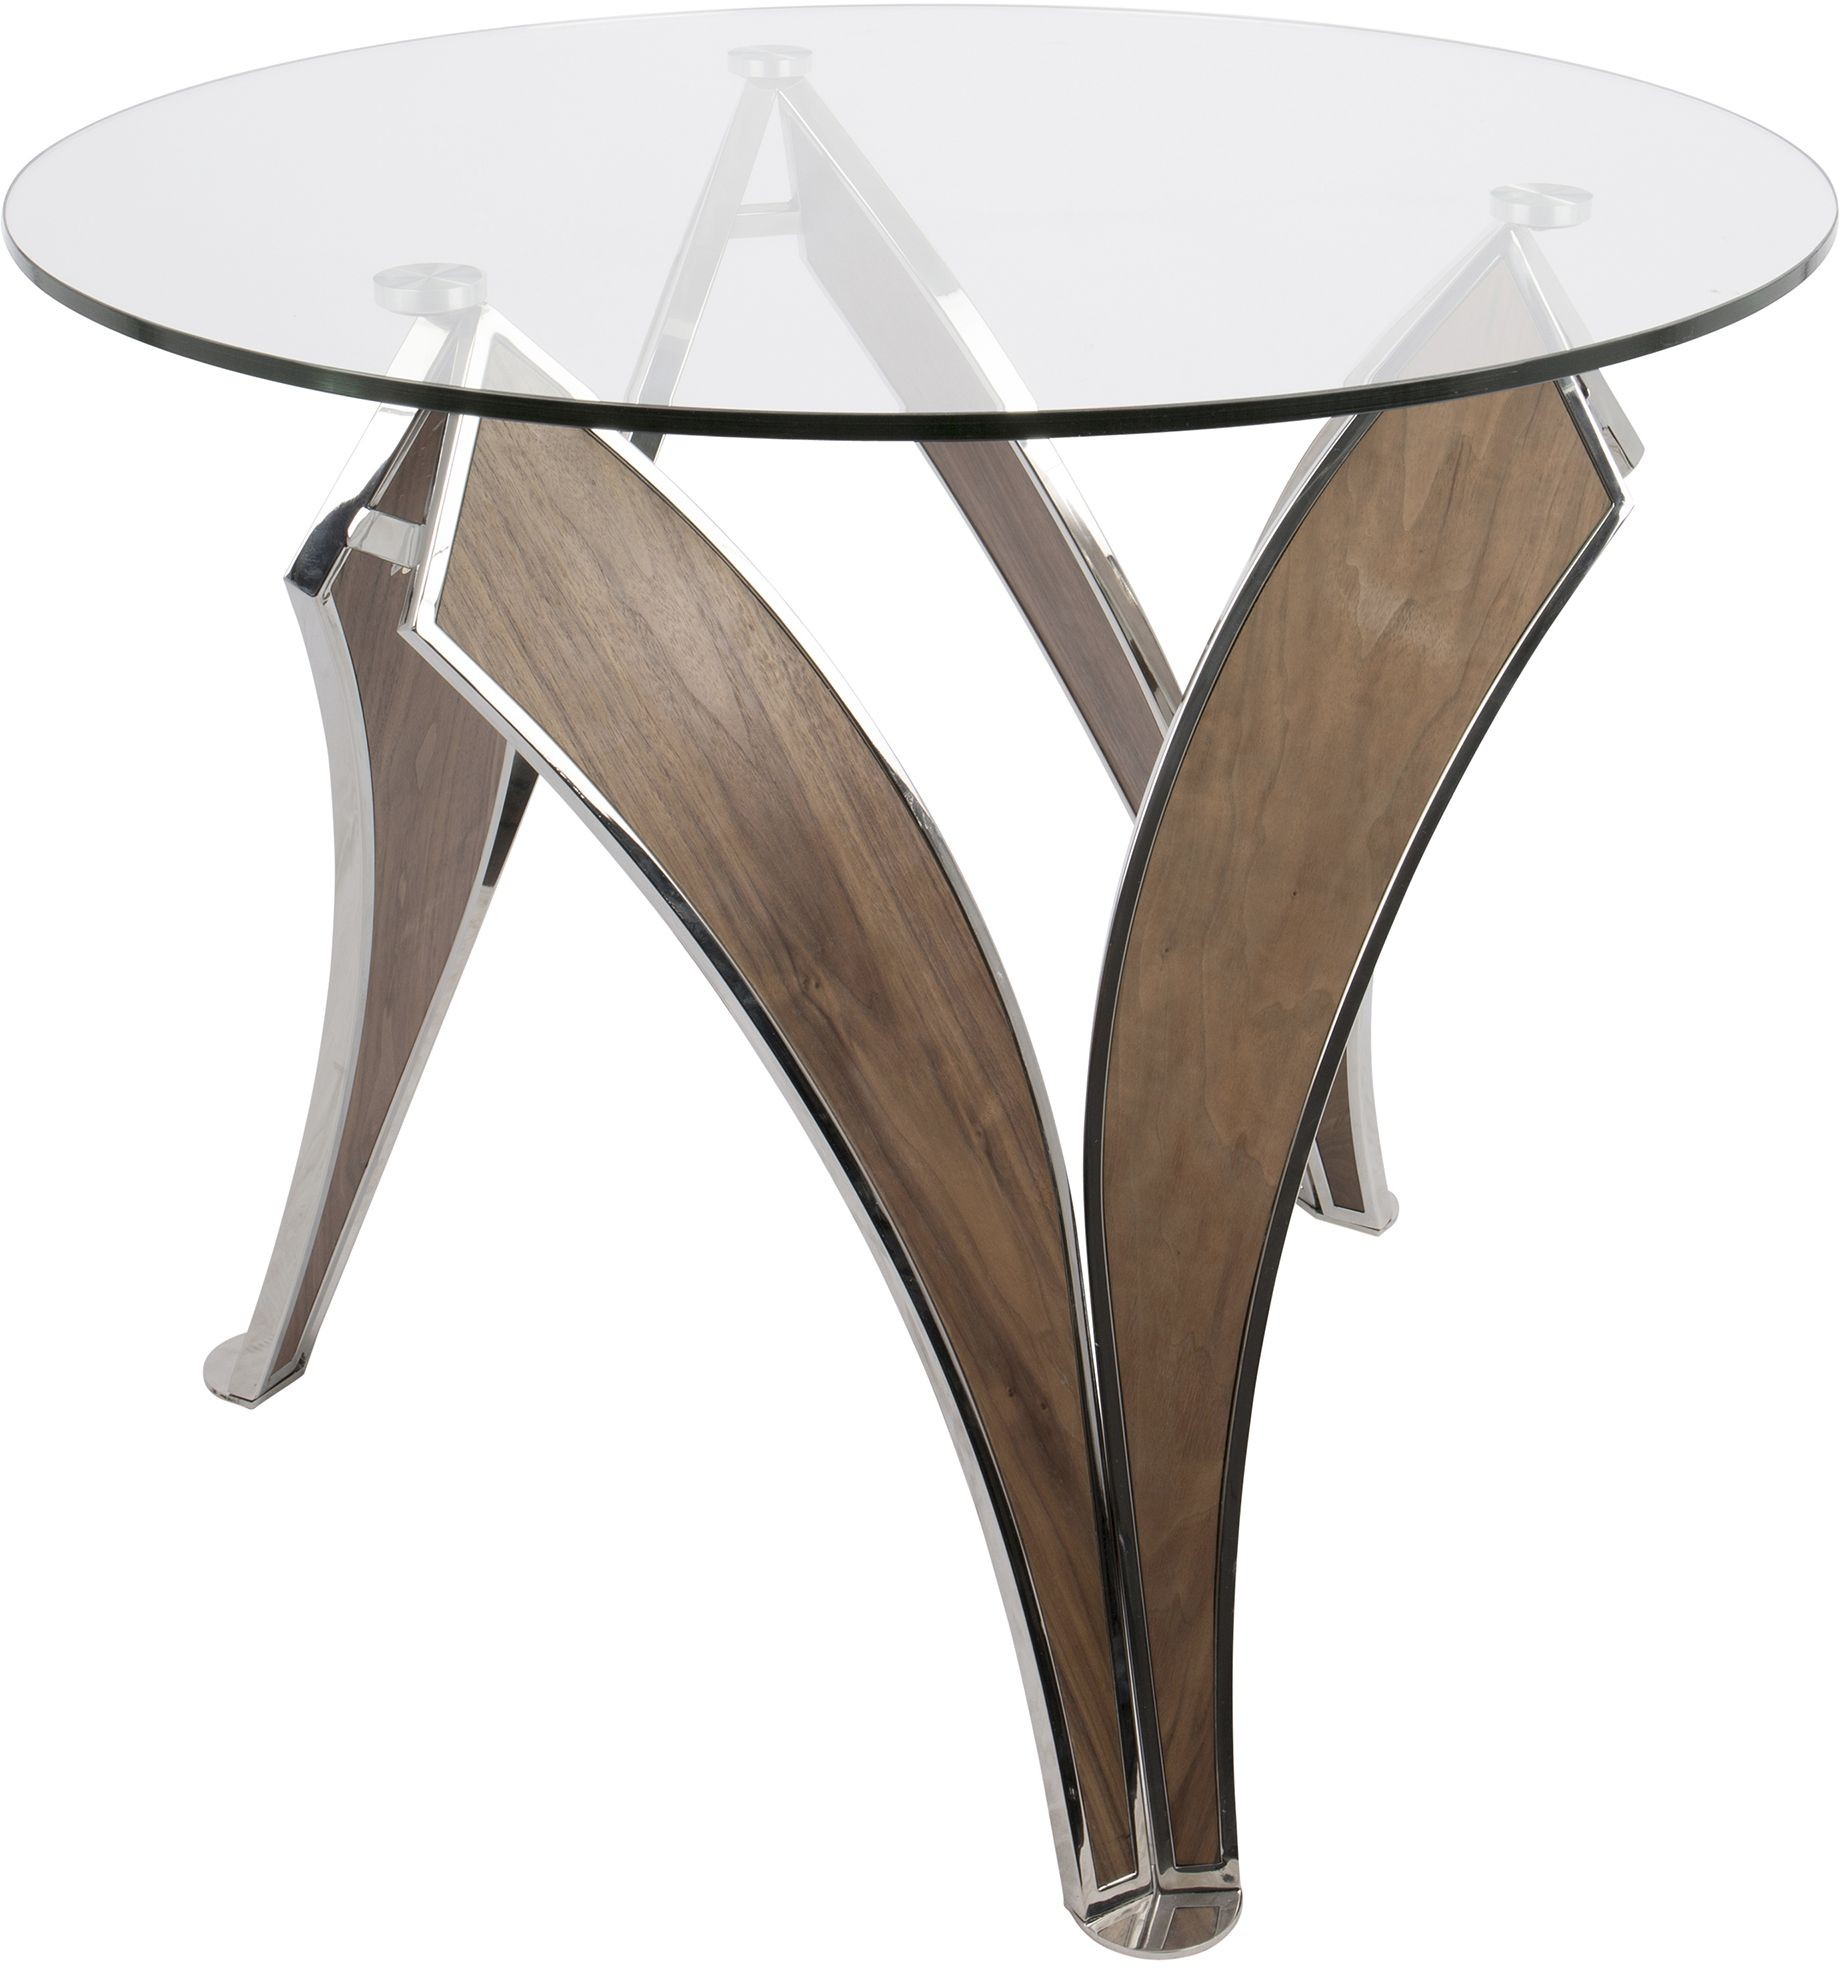 Prestige polished stainless steel and walnut dining table for Stainless steel dining table